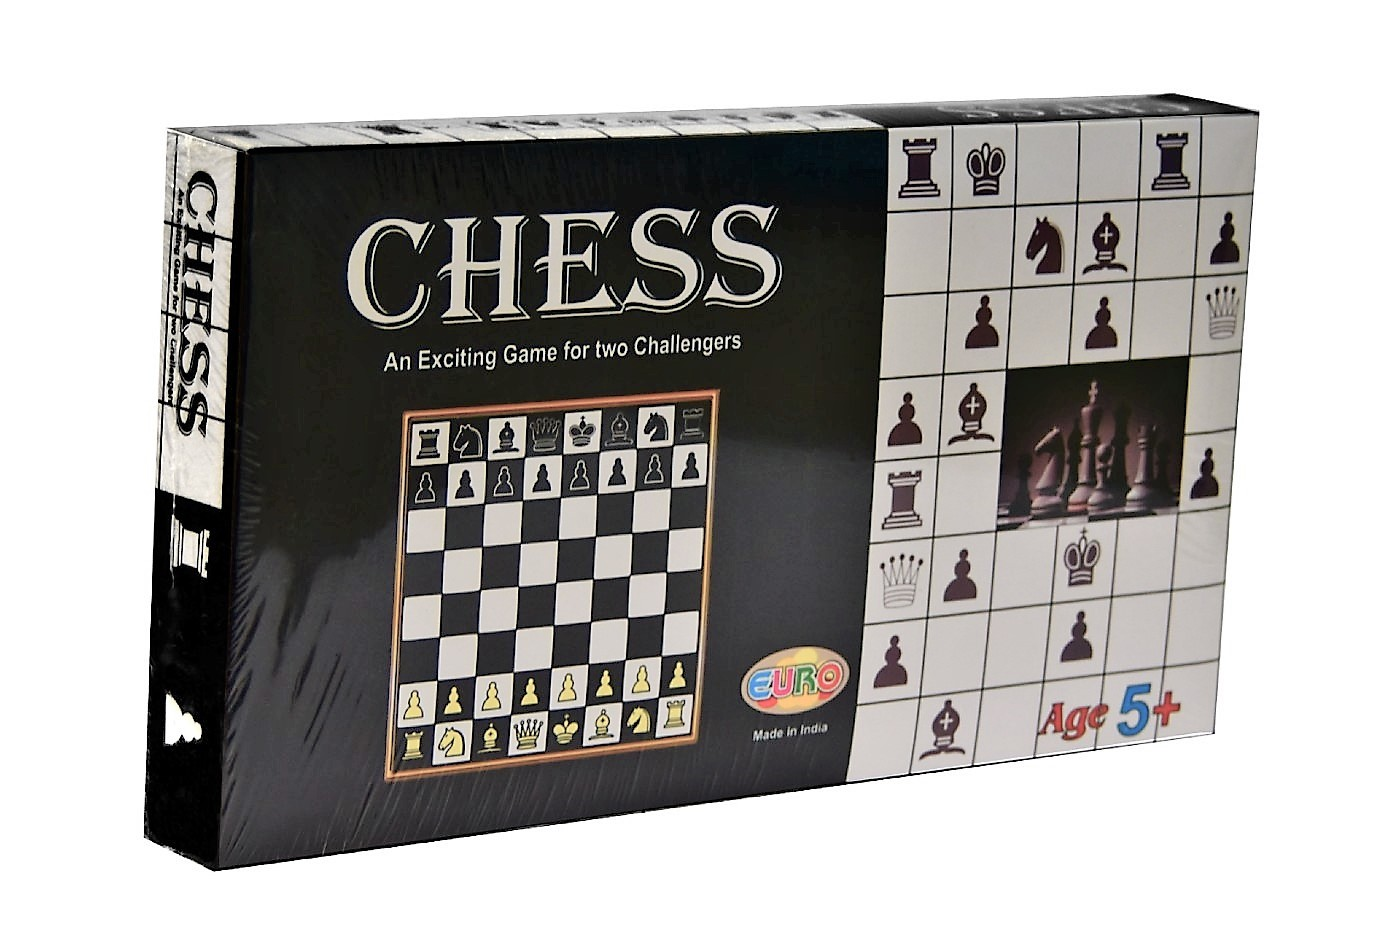 Buy Euro Chess Board Game Online Shop Toys Outdoor On Carrefour Uae